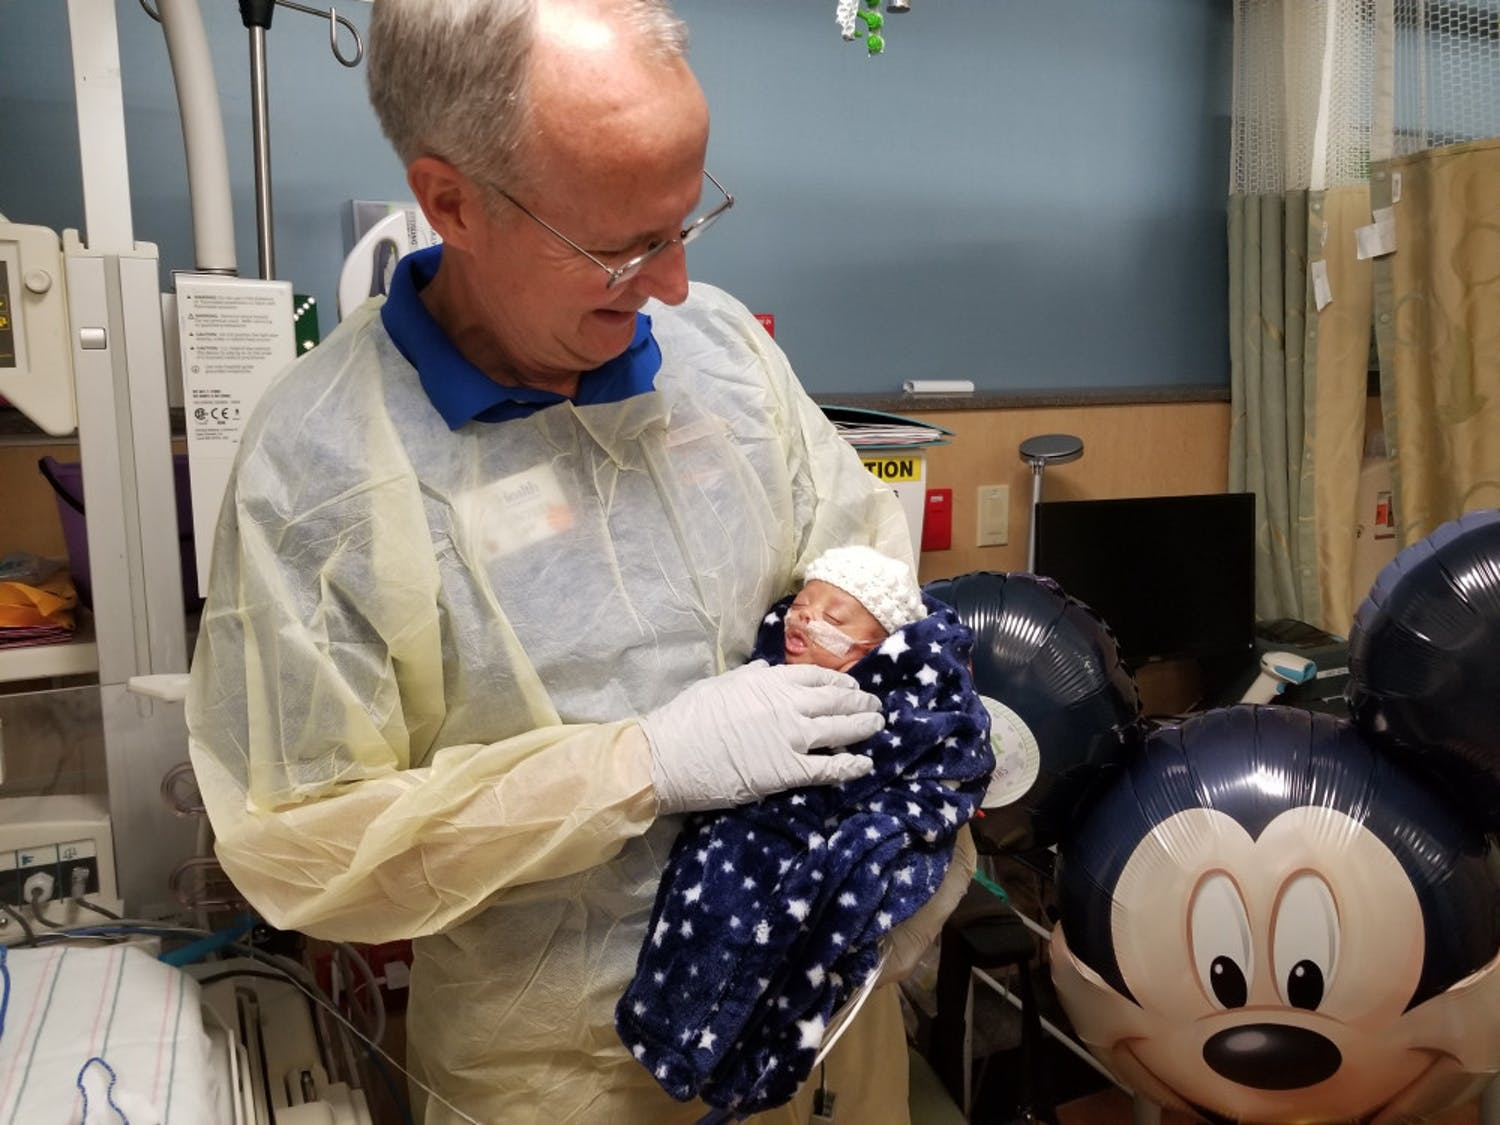 Cliff Preston, 63, was nominated for the NASCAR Foundation Betty Jane France Humanitarian Award for his volunteer work as a baby cuddler at UF Health Shands Hospital in the neonatal intensive care unit.